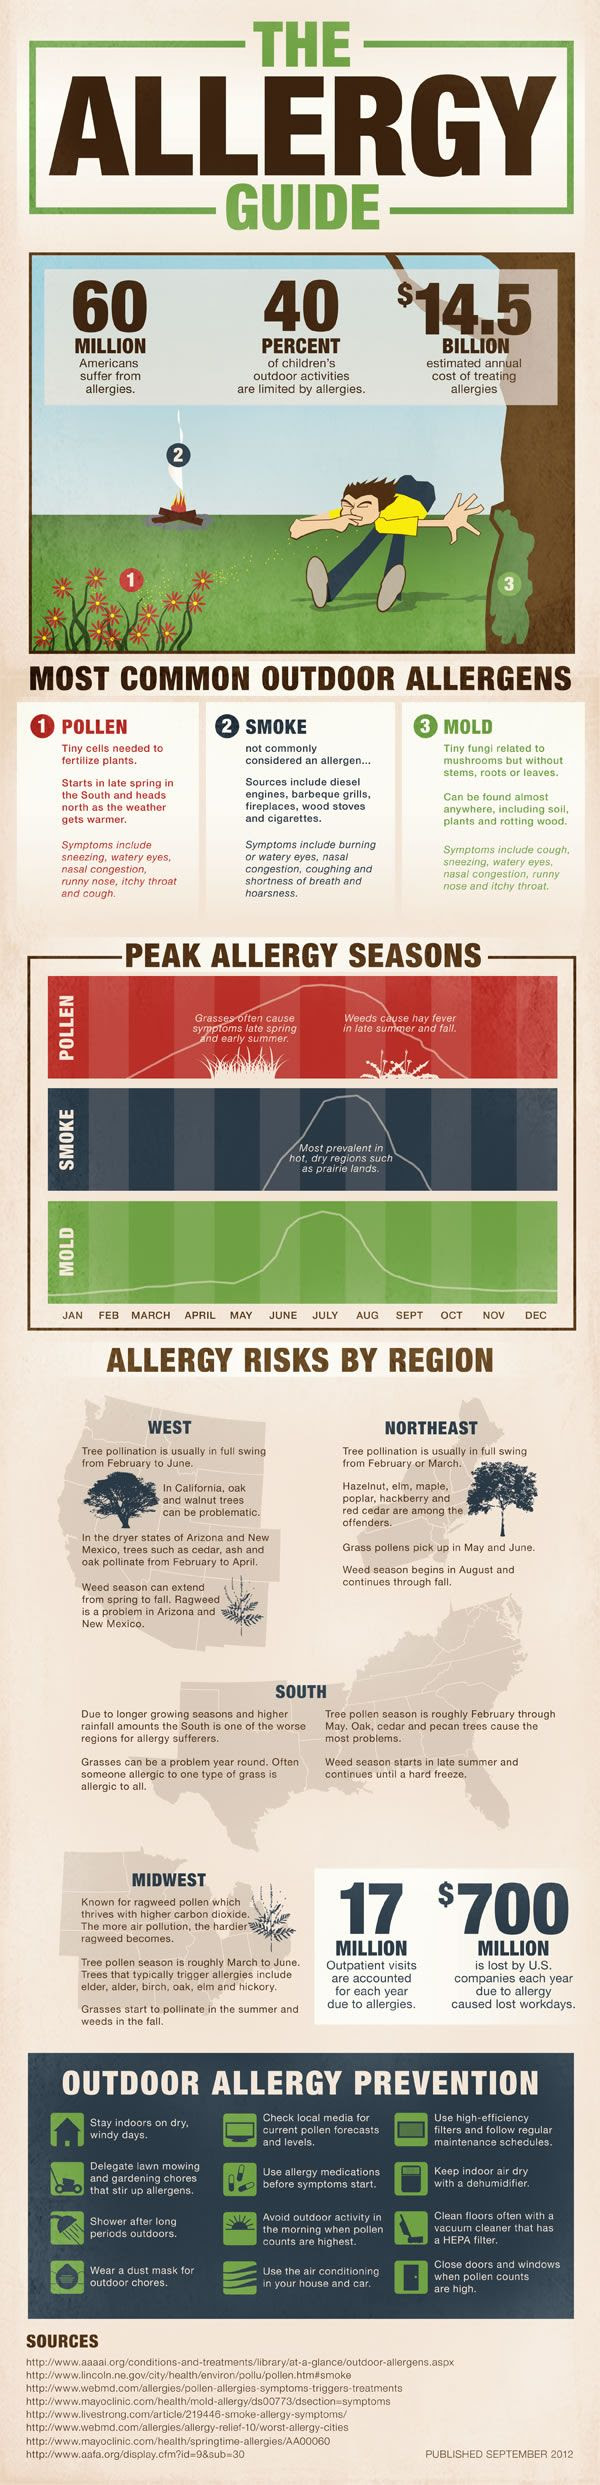 Most Common Outdoor Allergens and Their Prevention Tips